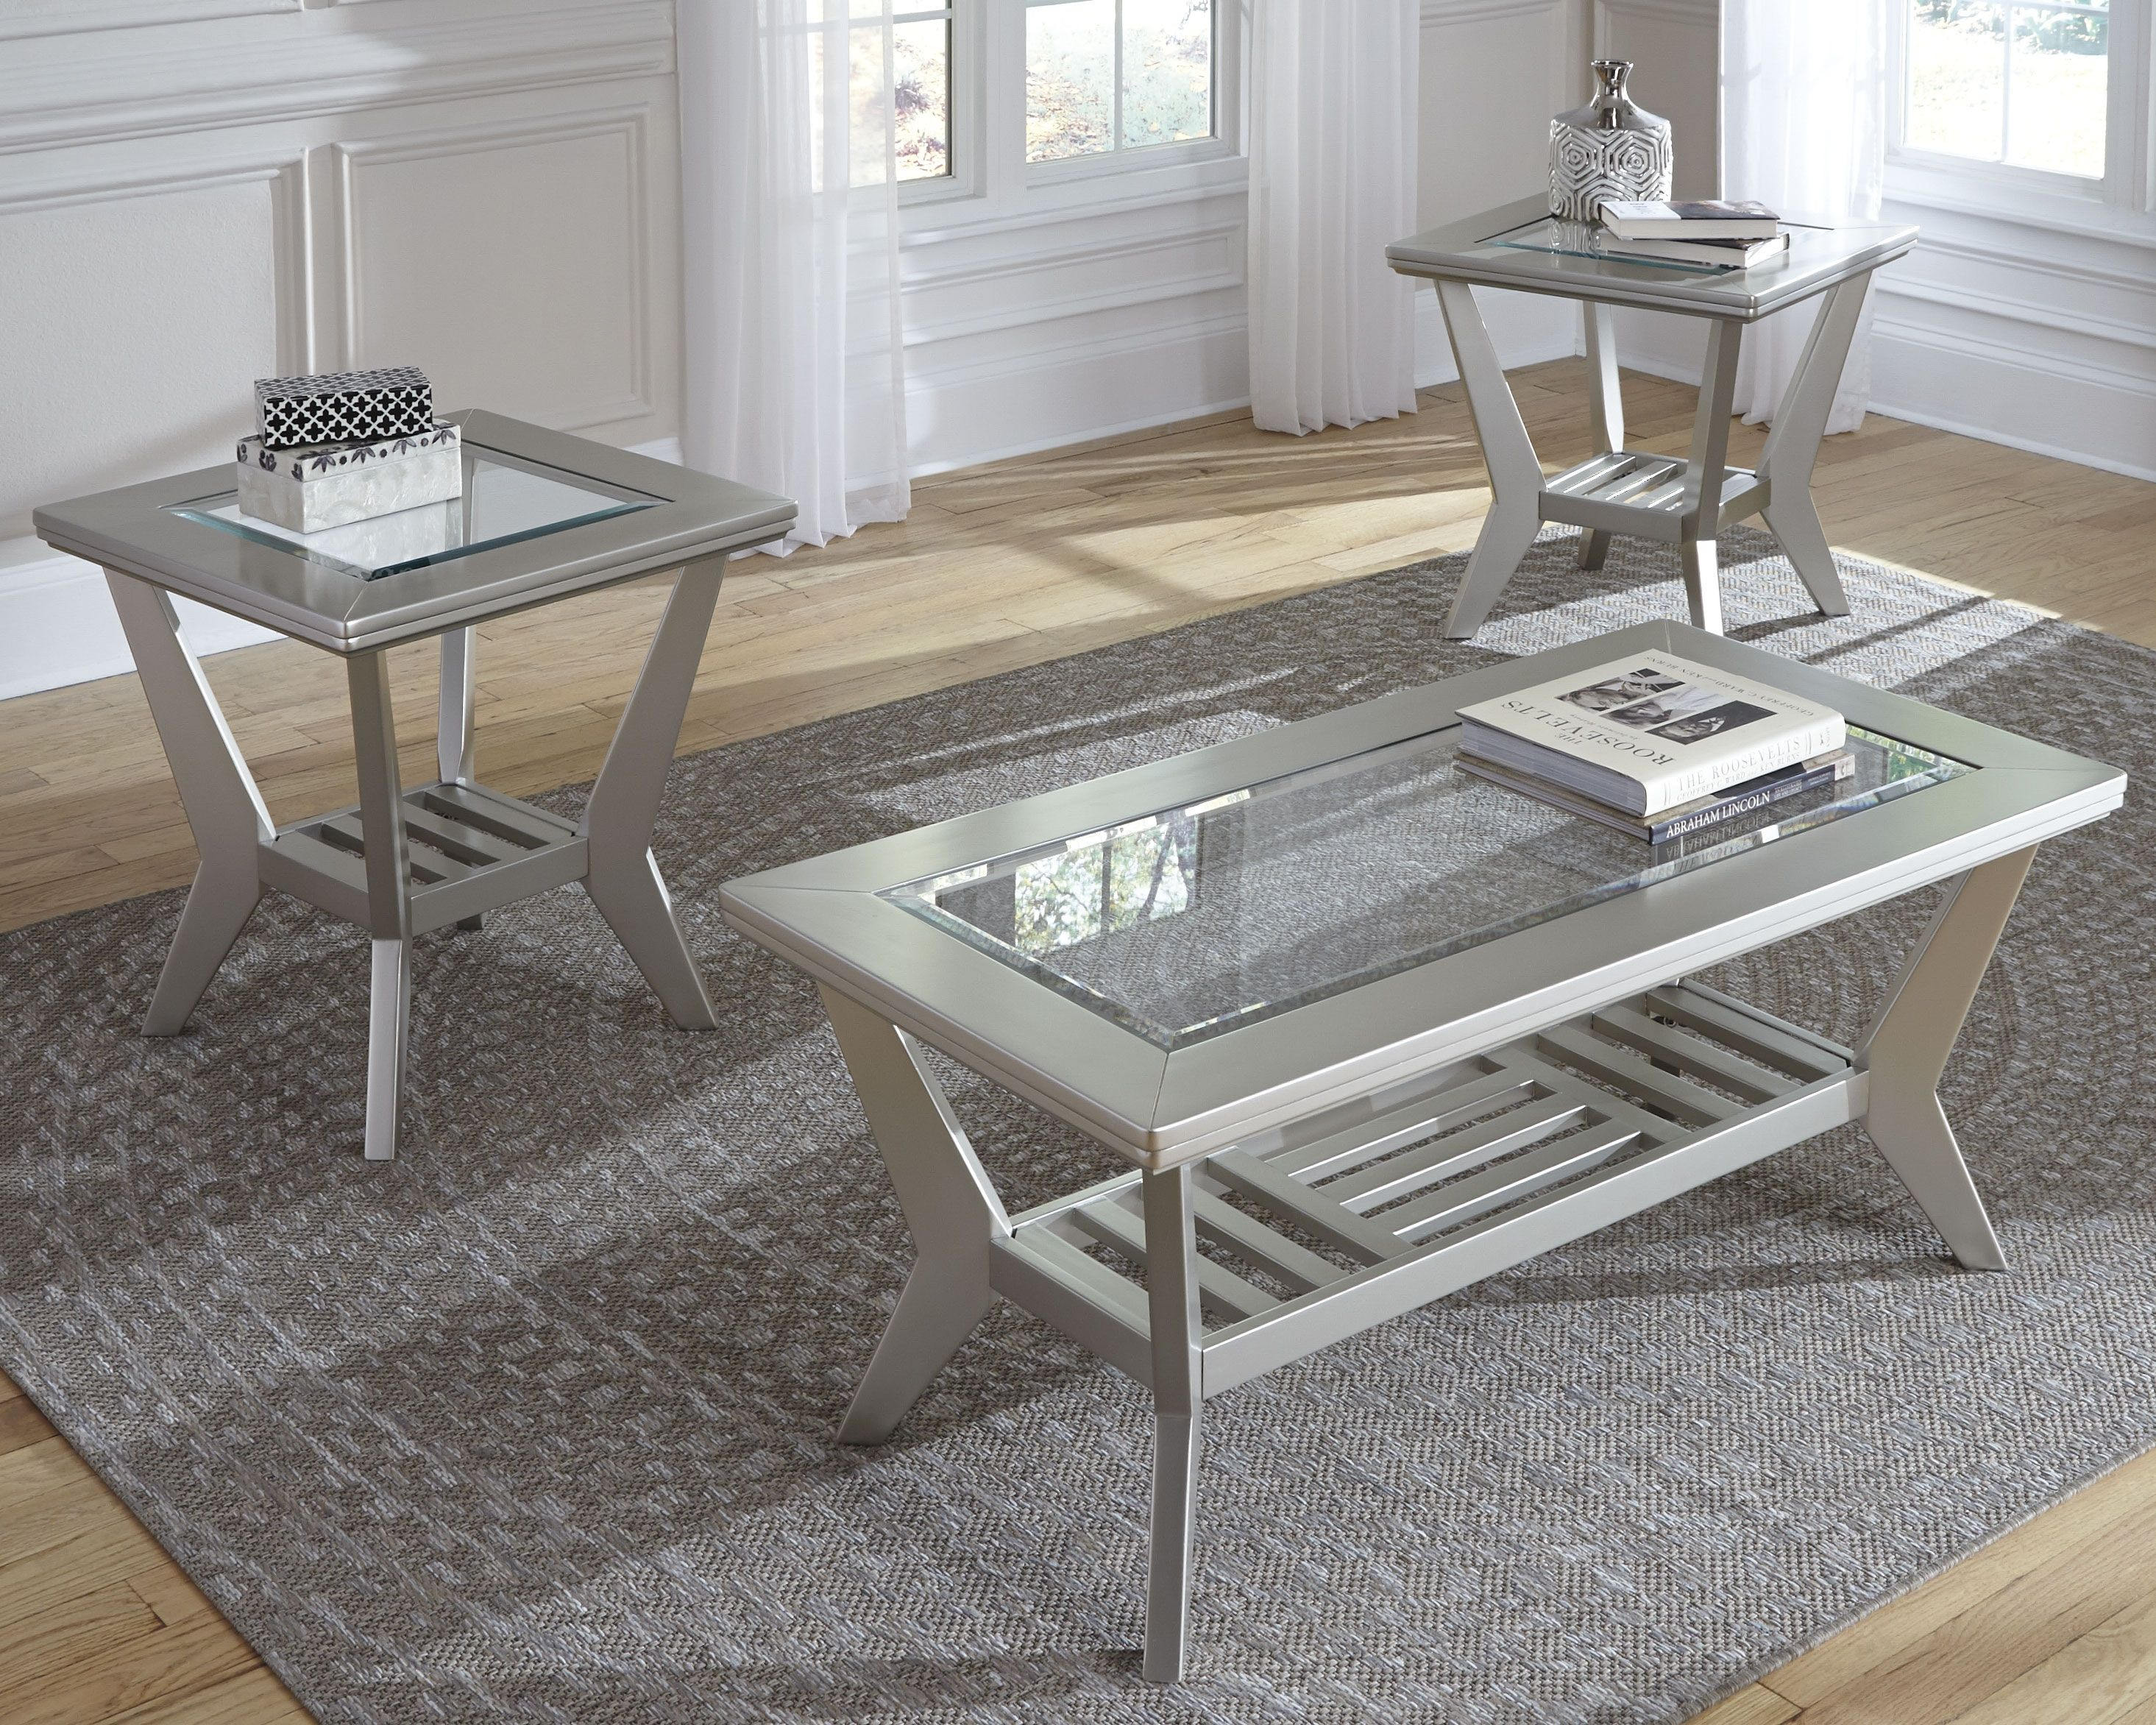 Pin By Tania Marte On Coffee Table Coffee Table Ashley Furniture Dining Room Dining Room Table [ 2344 x 2930 Pixel ]